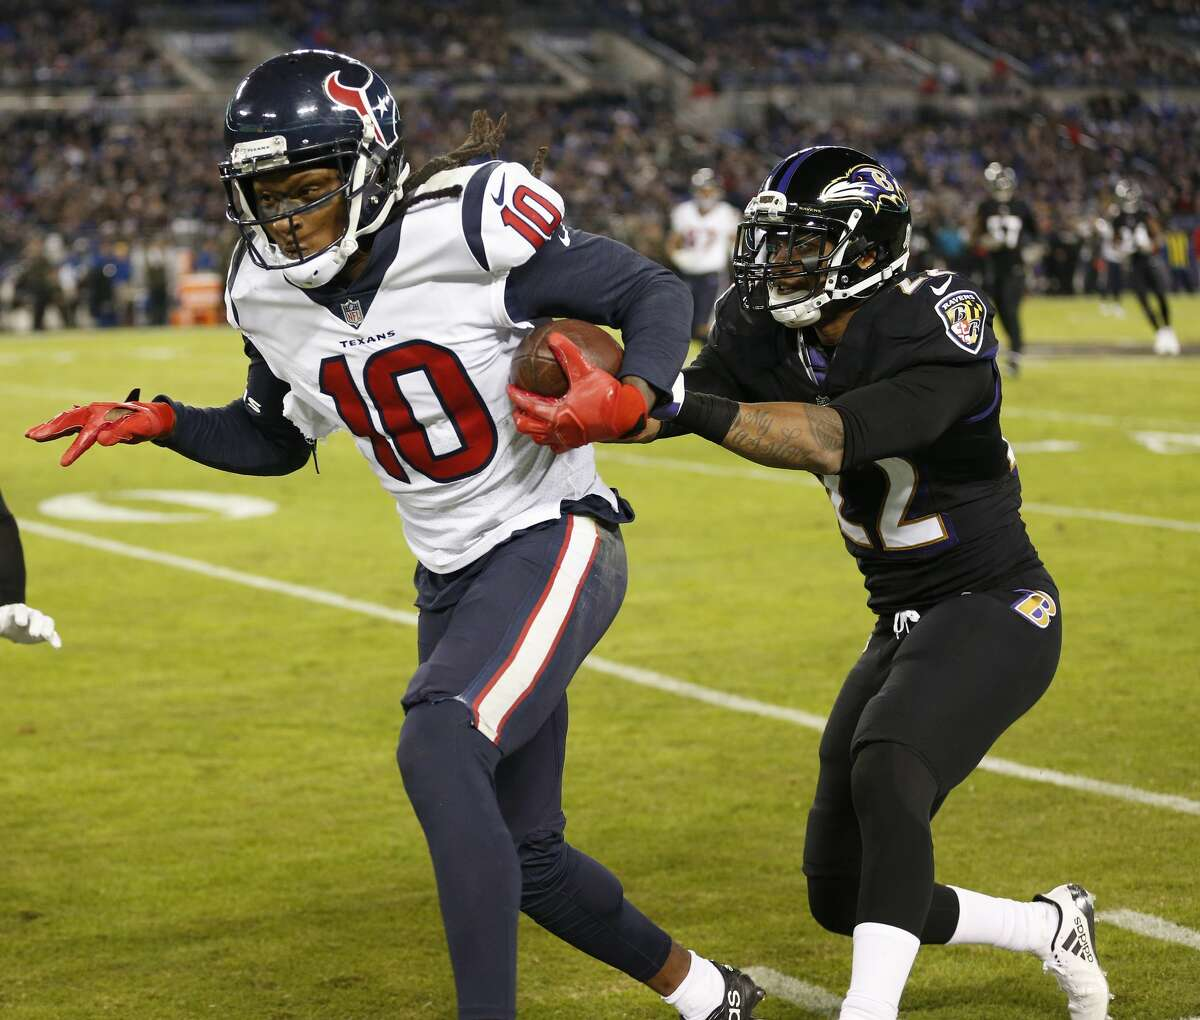 JOHN McCLAIN GRADES THE TEXANS Wide receiver/tight endDeAndre Hopkins had seven catches for 125 yards. He made big plays on each of the Texans' four scoring drives. He also drew two penalties that benefited scoring drives. Braxton Miller contributed five receptions.Grade: B